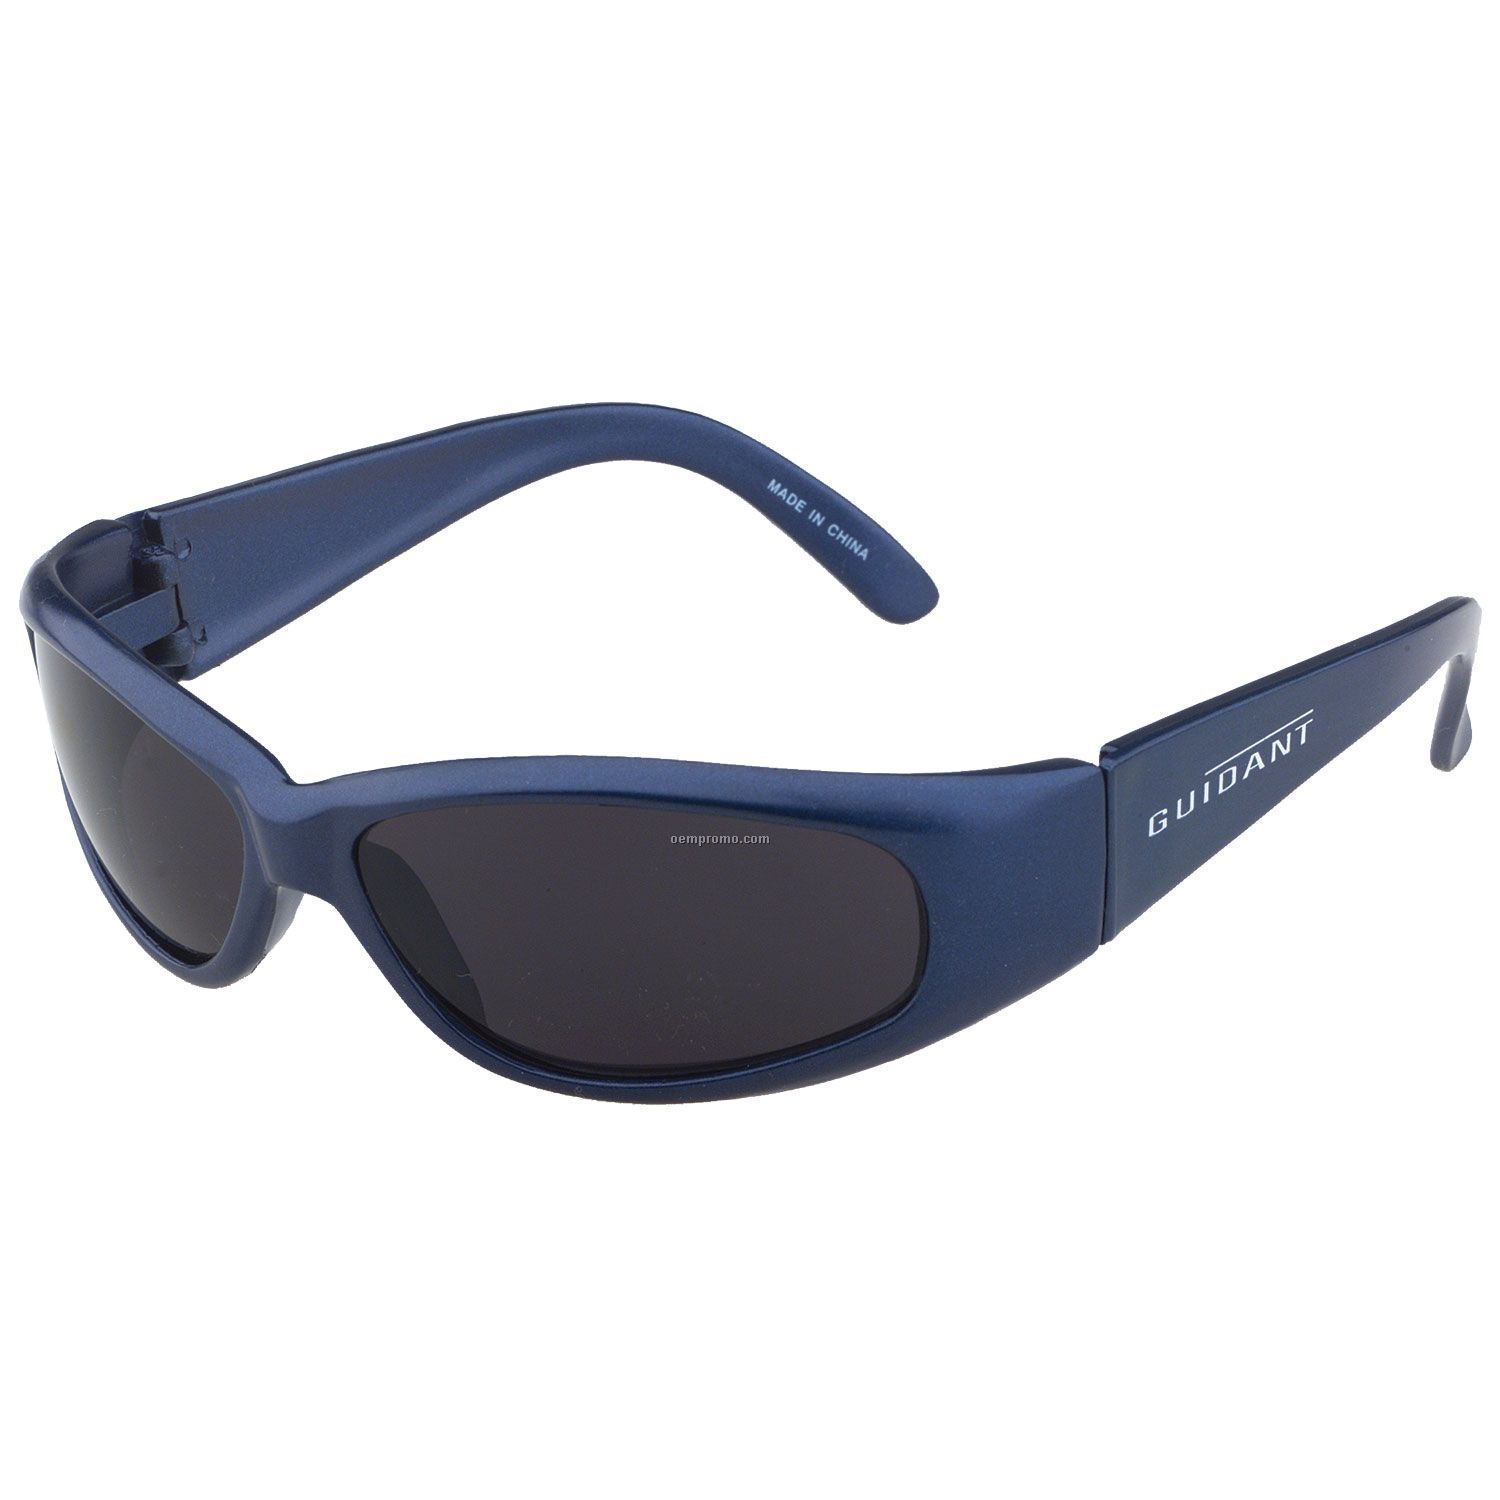 Racer Wrap - Hot Blue Silk Frame Sunglasses